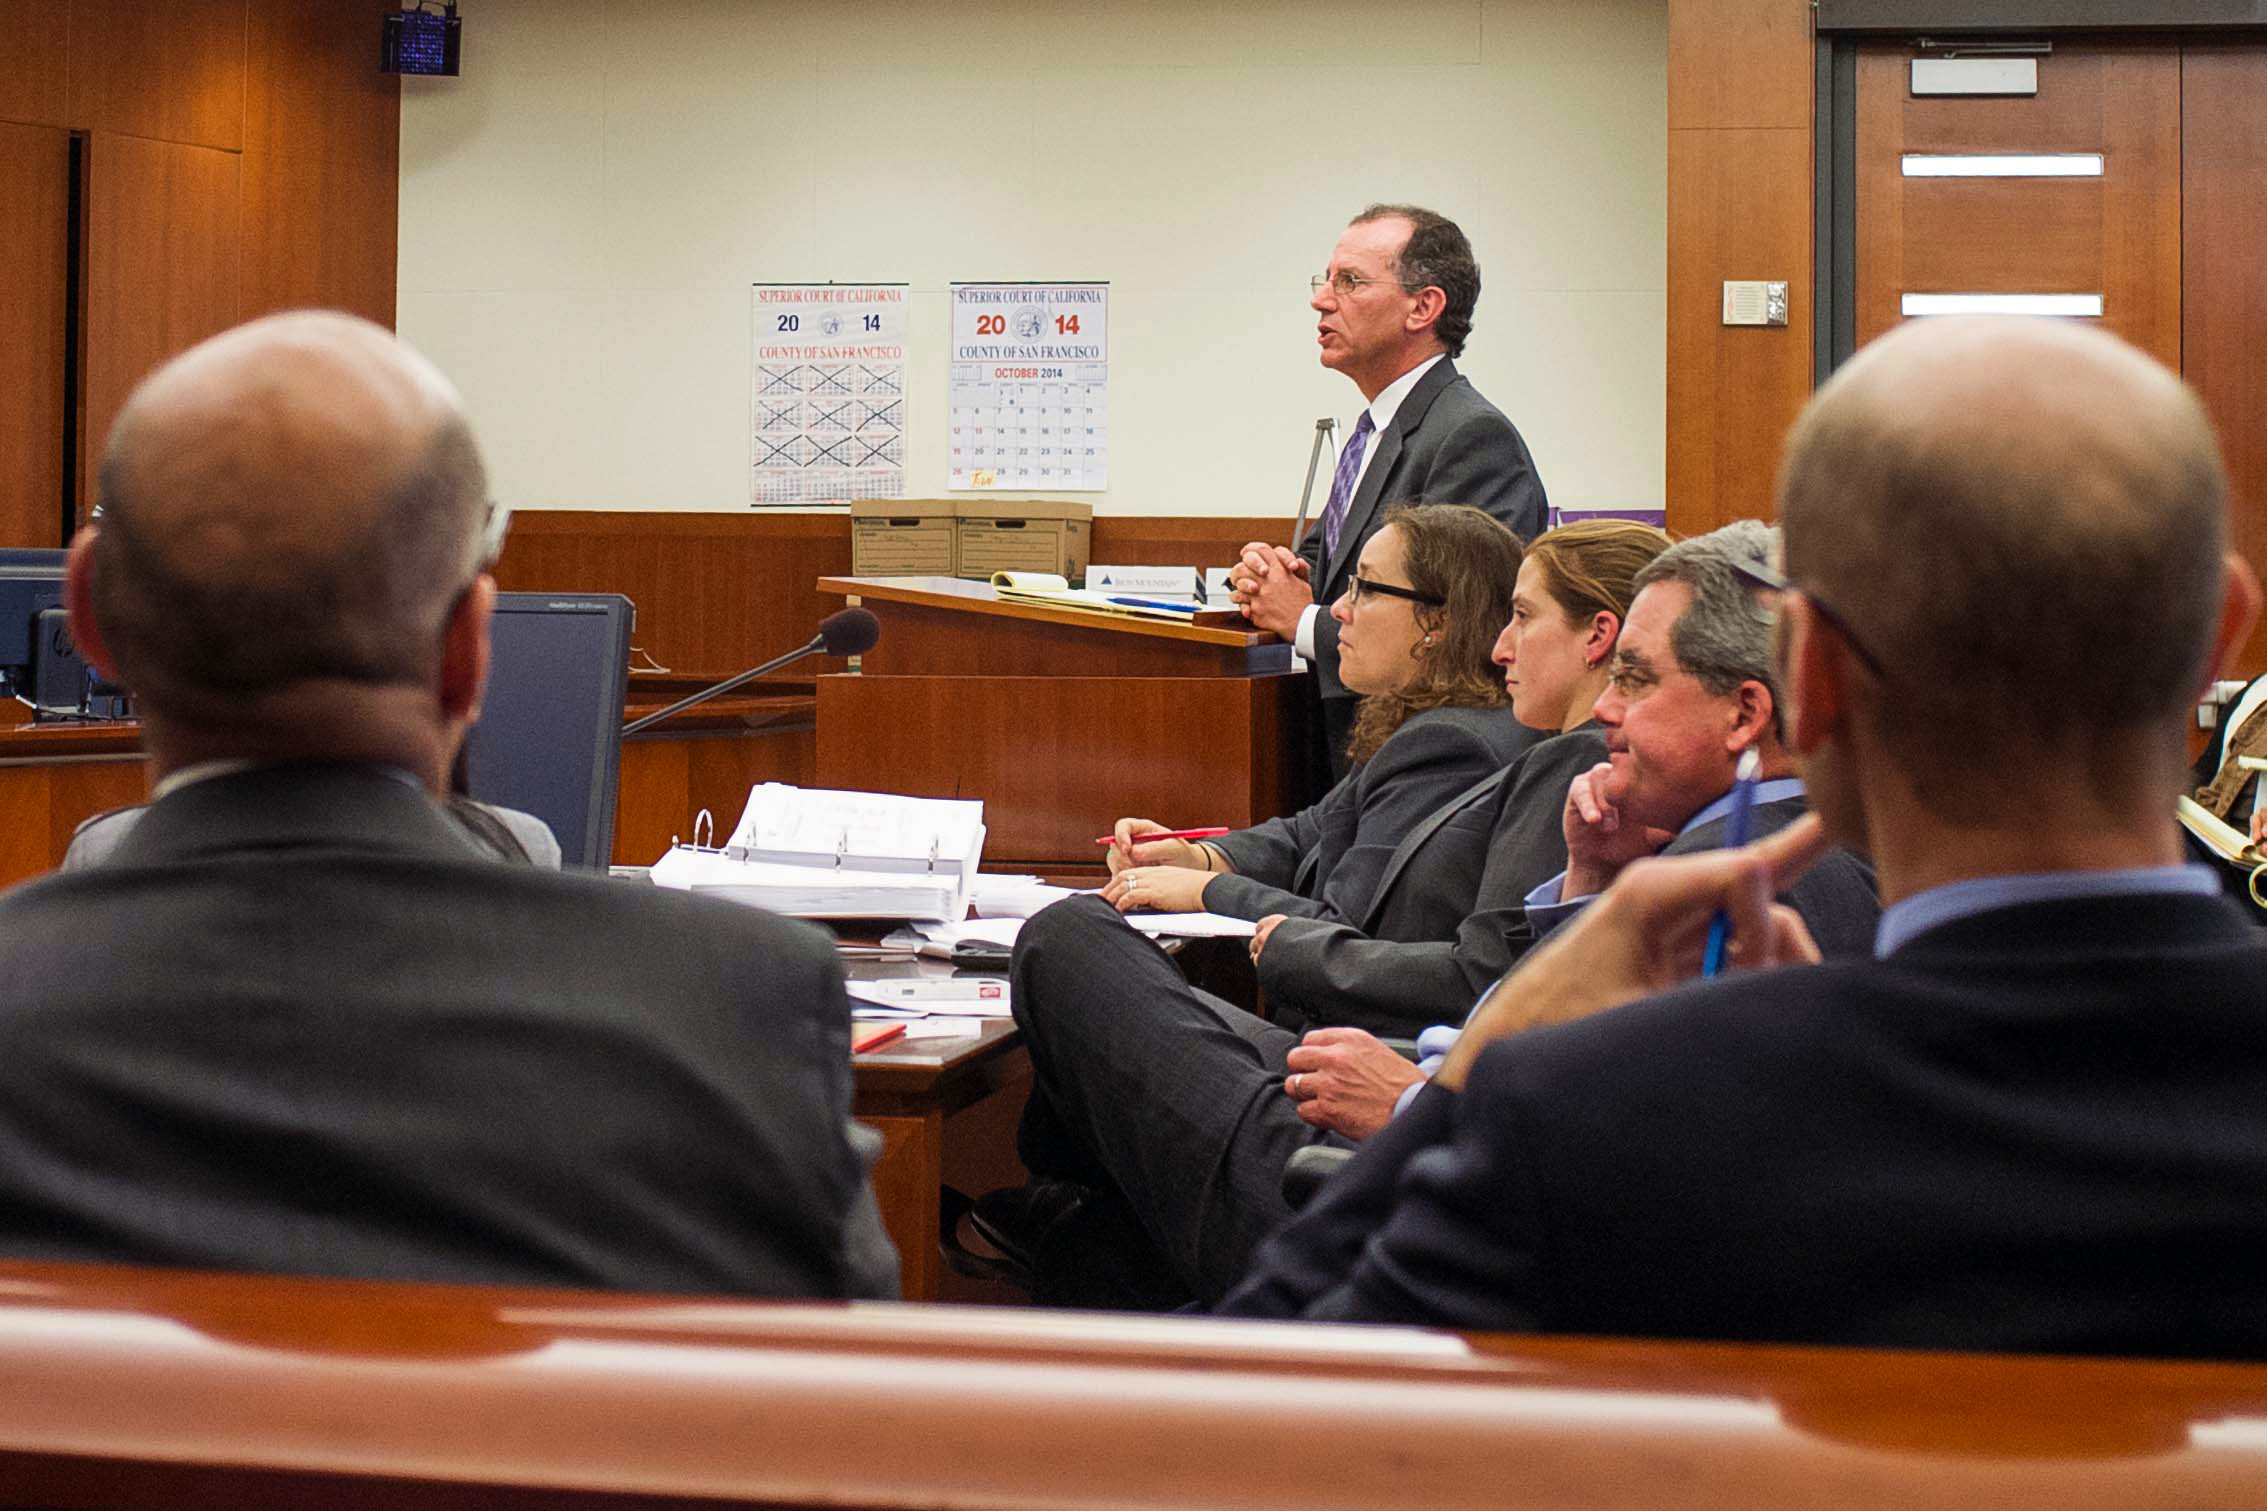 Attorney Andrew Sclar, representing the ACCJC, cross-examines California Community Colleges Chancellor Brice Harris on Day 1 of the City College accreditation trial at San Francisco Superior Court. Monday, Oct. 27, 2014. Harris spoke highly of the quality of education received by City College's 70,000 students. (Photo by James Fanucchi)